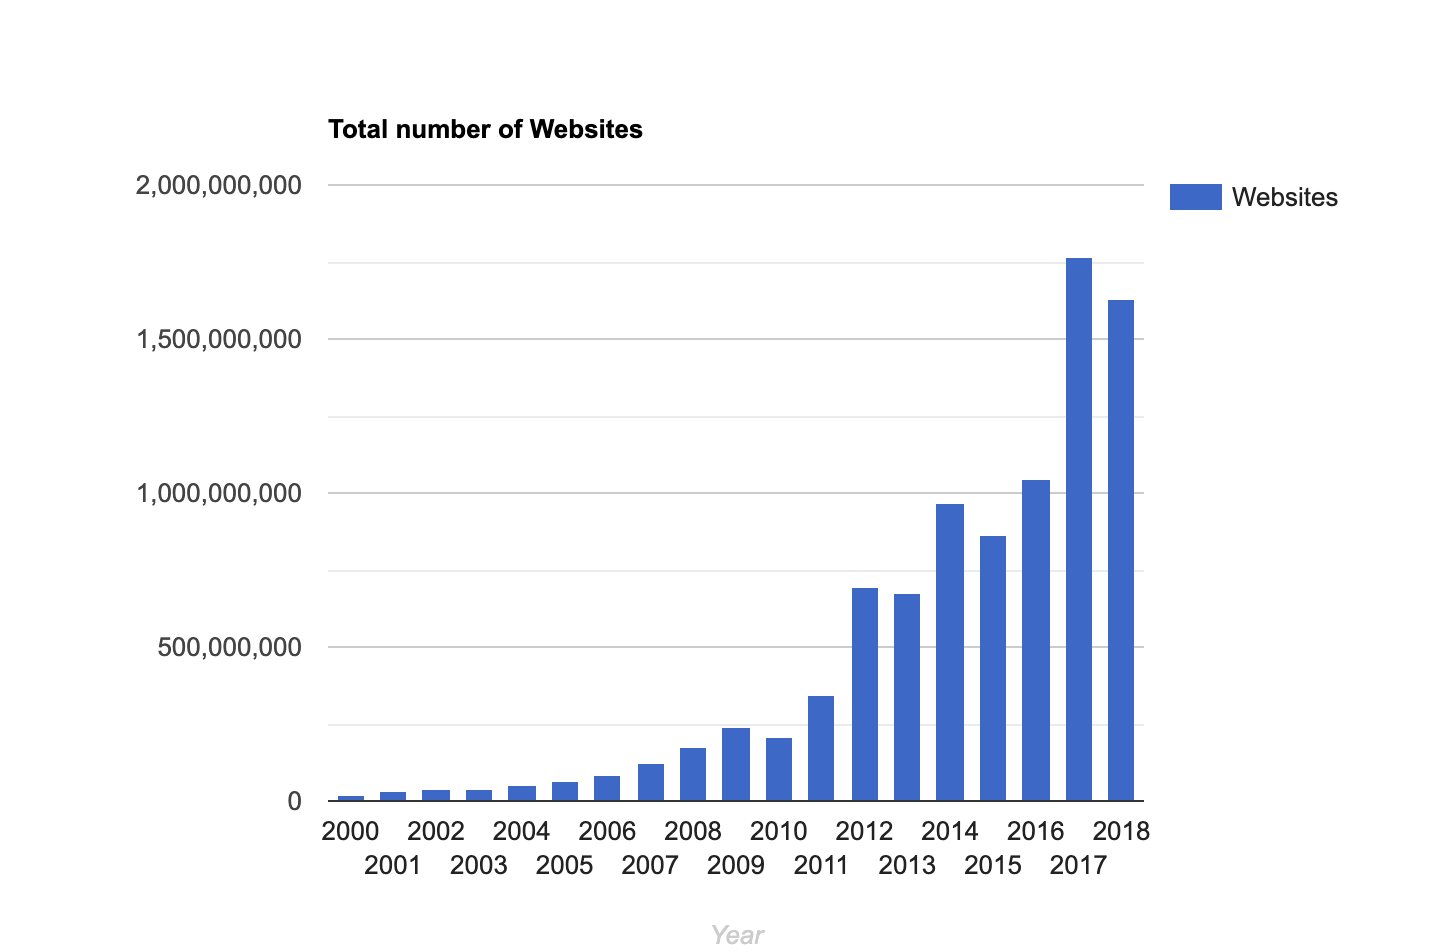 Bar graph showing near-exponential growth of number of live websites from 2000 to 2018.